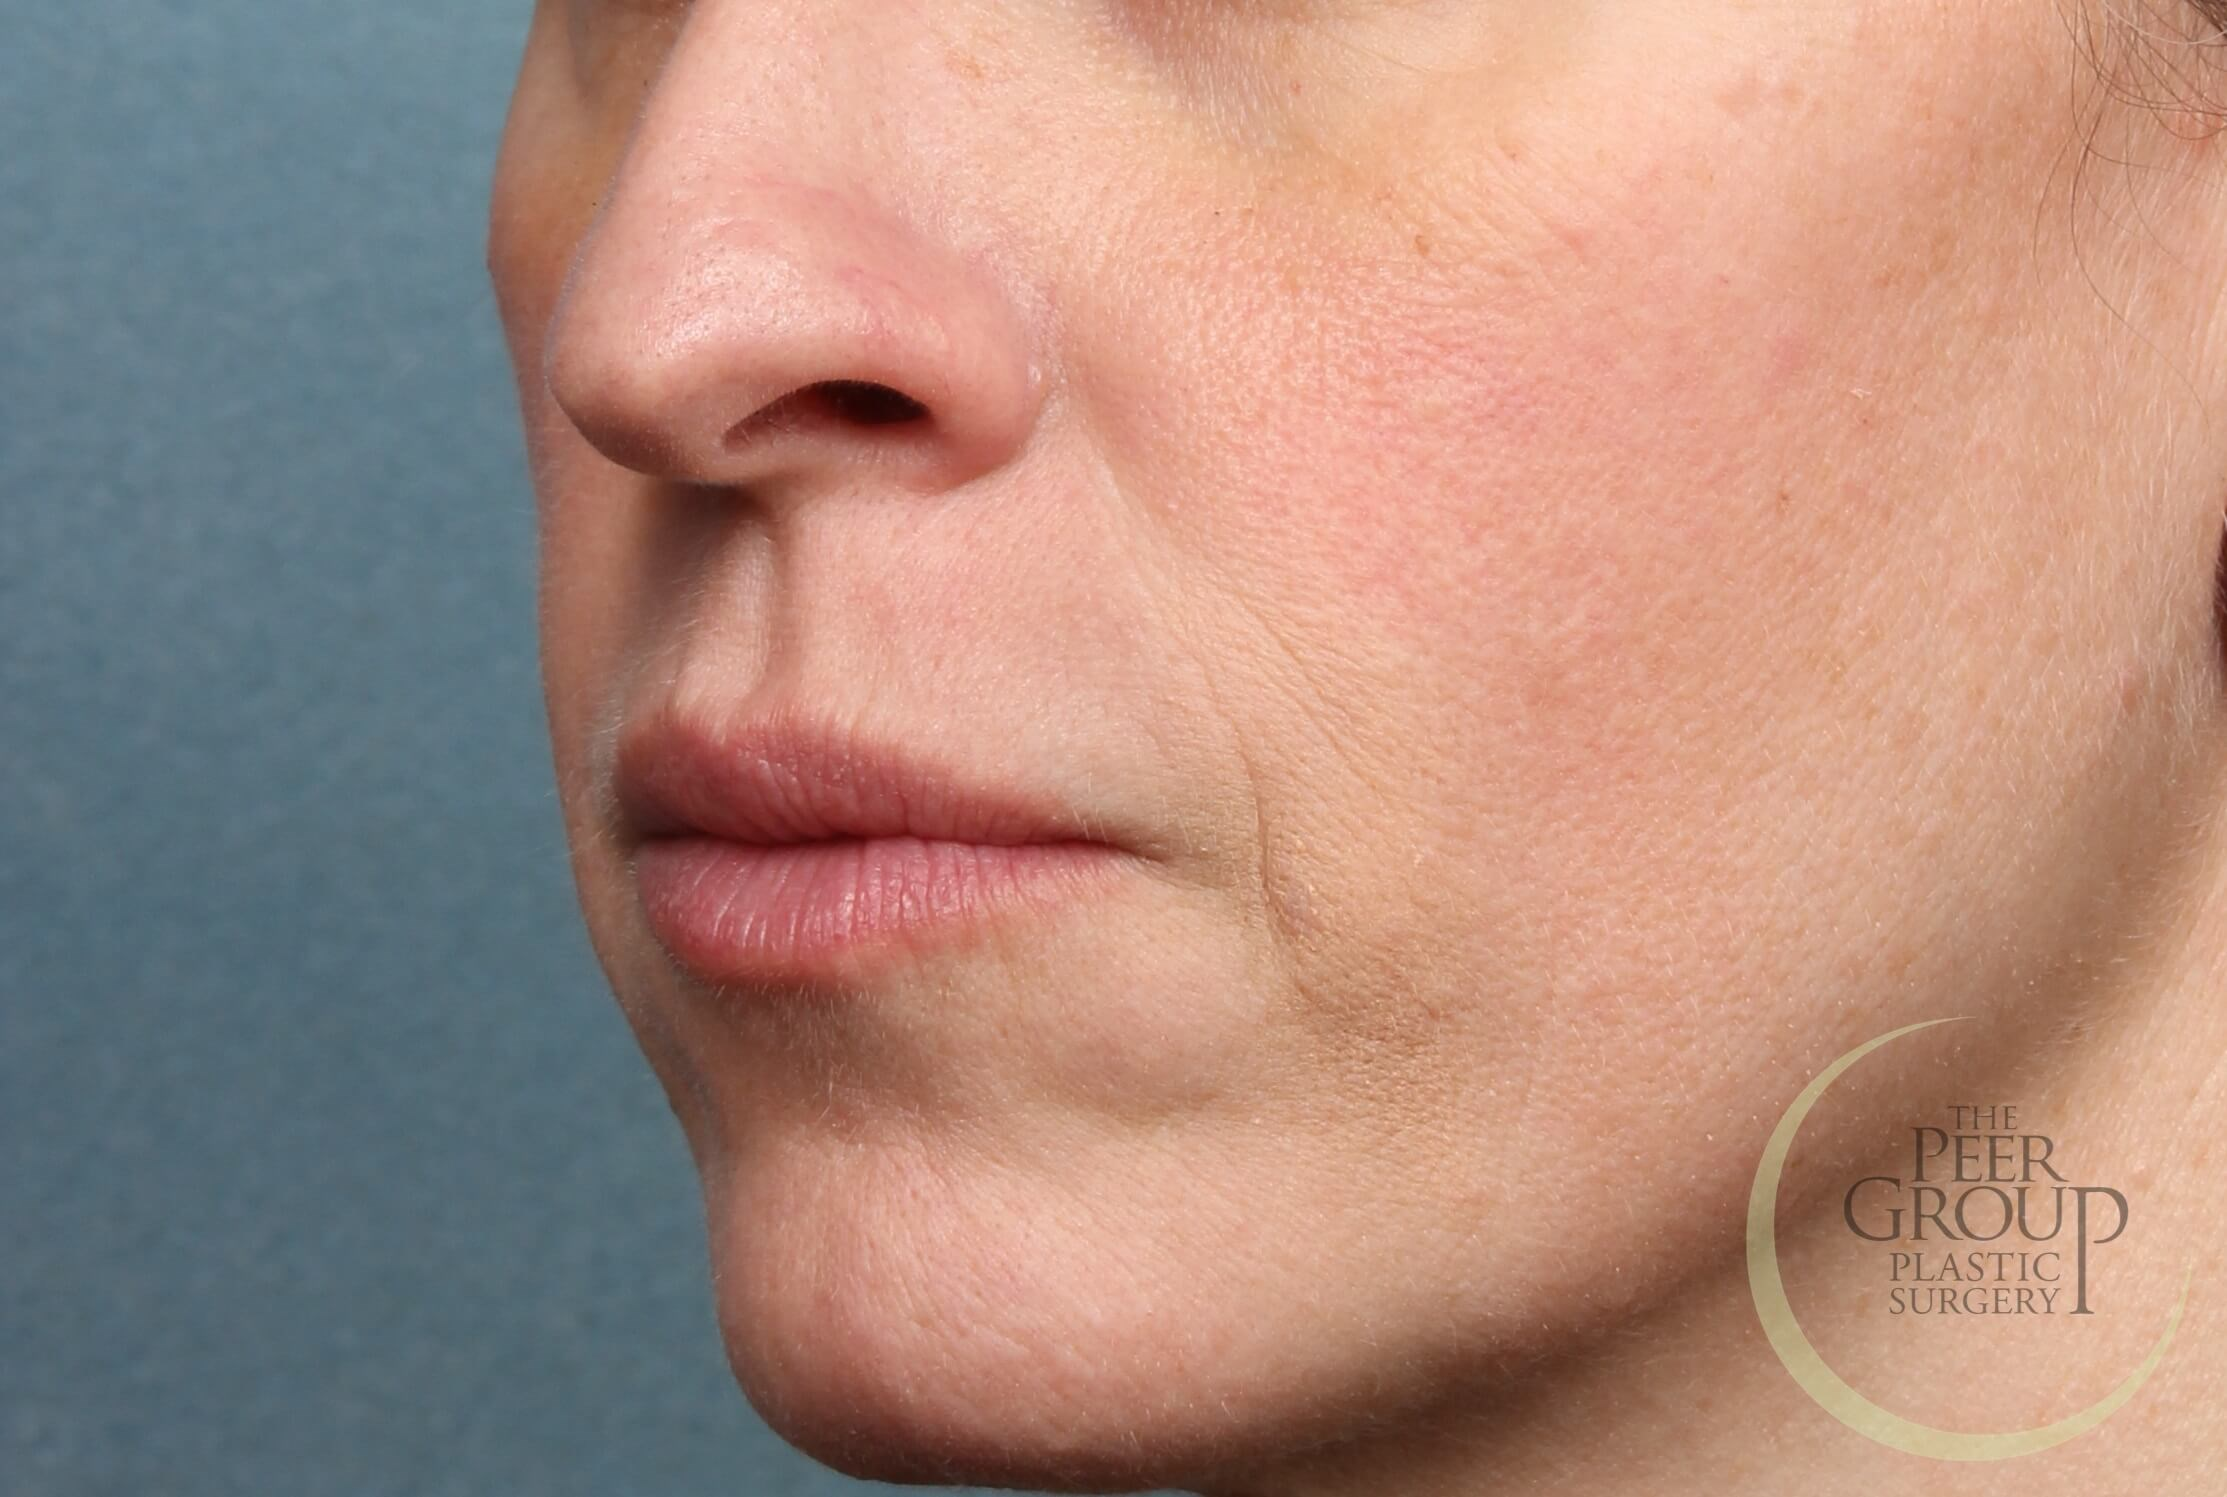 NJ Filler for Lip Enhancement After Juvederm Filler